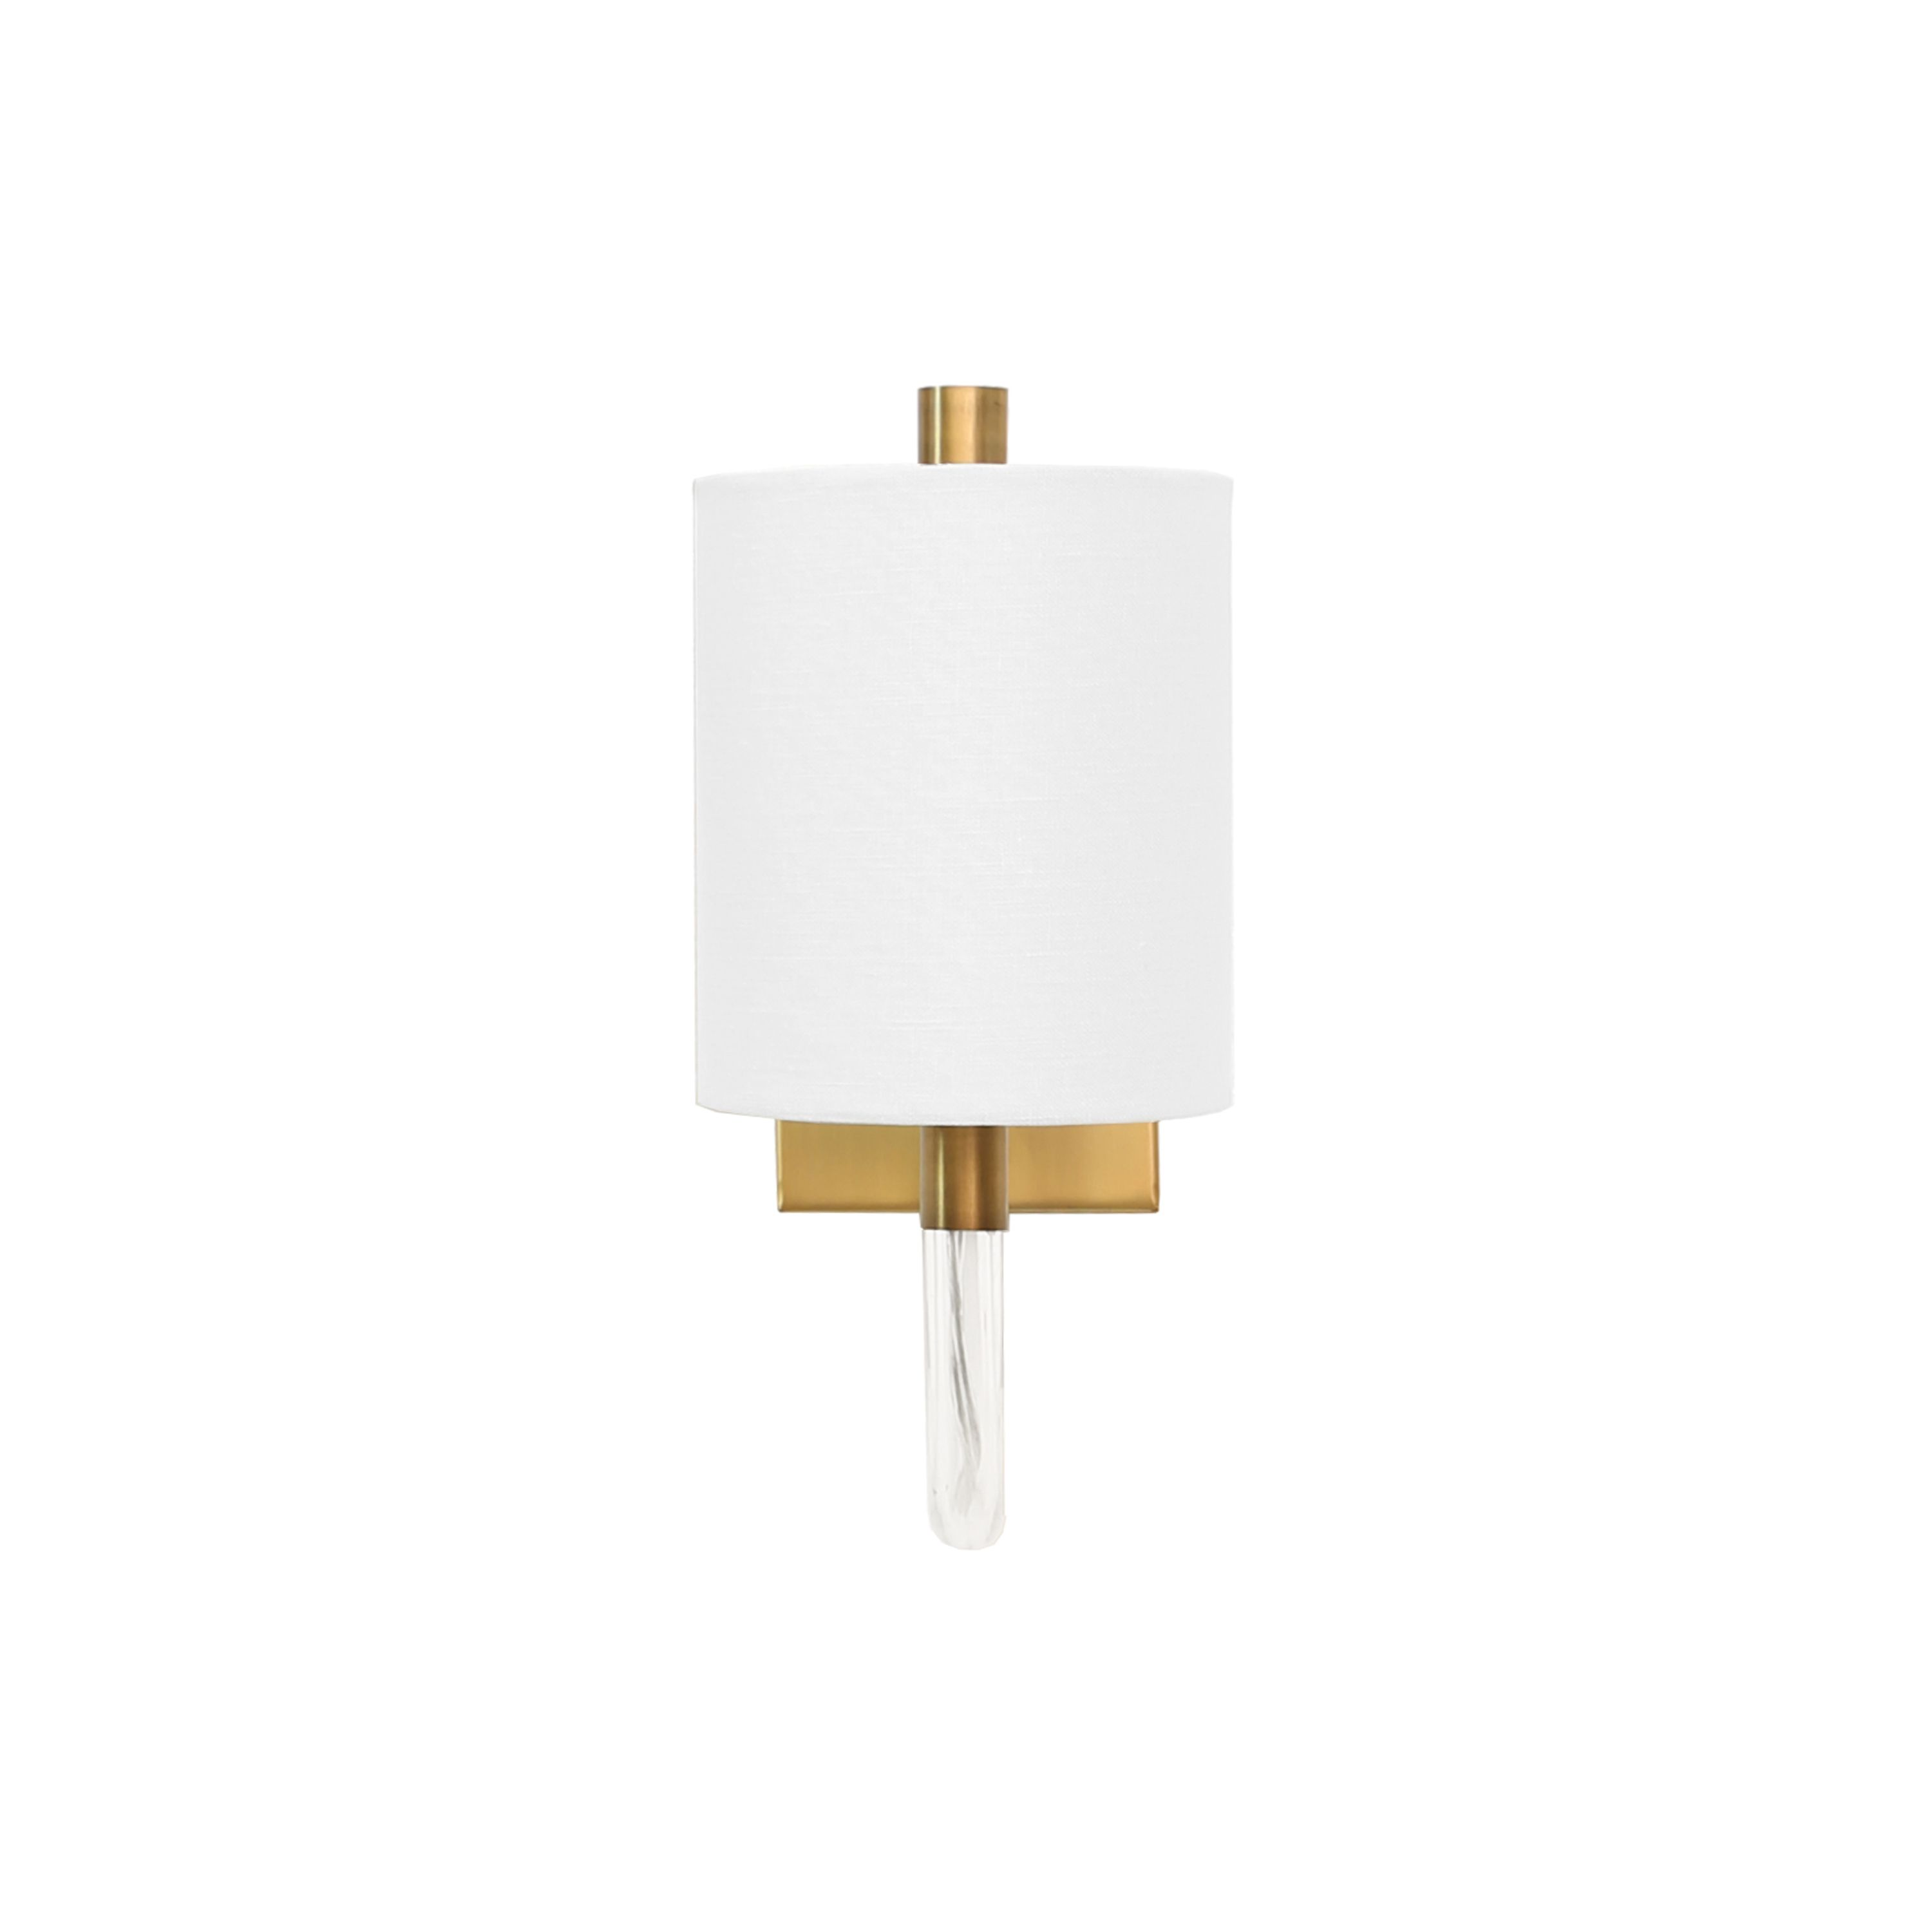 Sconce with Acrylic Neck & White Shade in Antique Brass